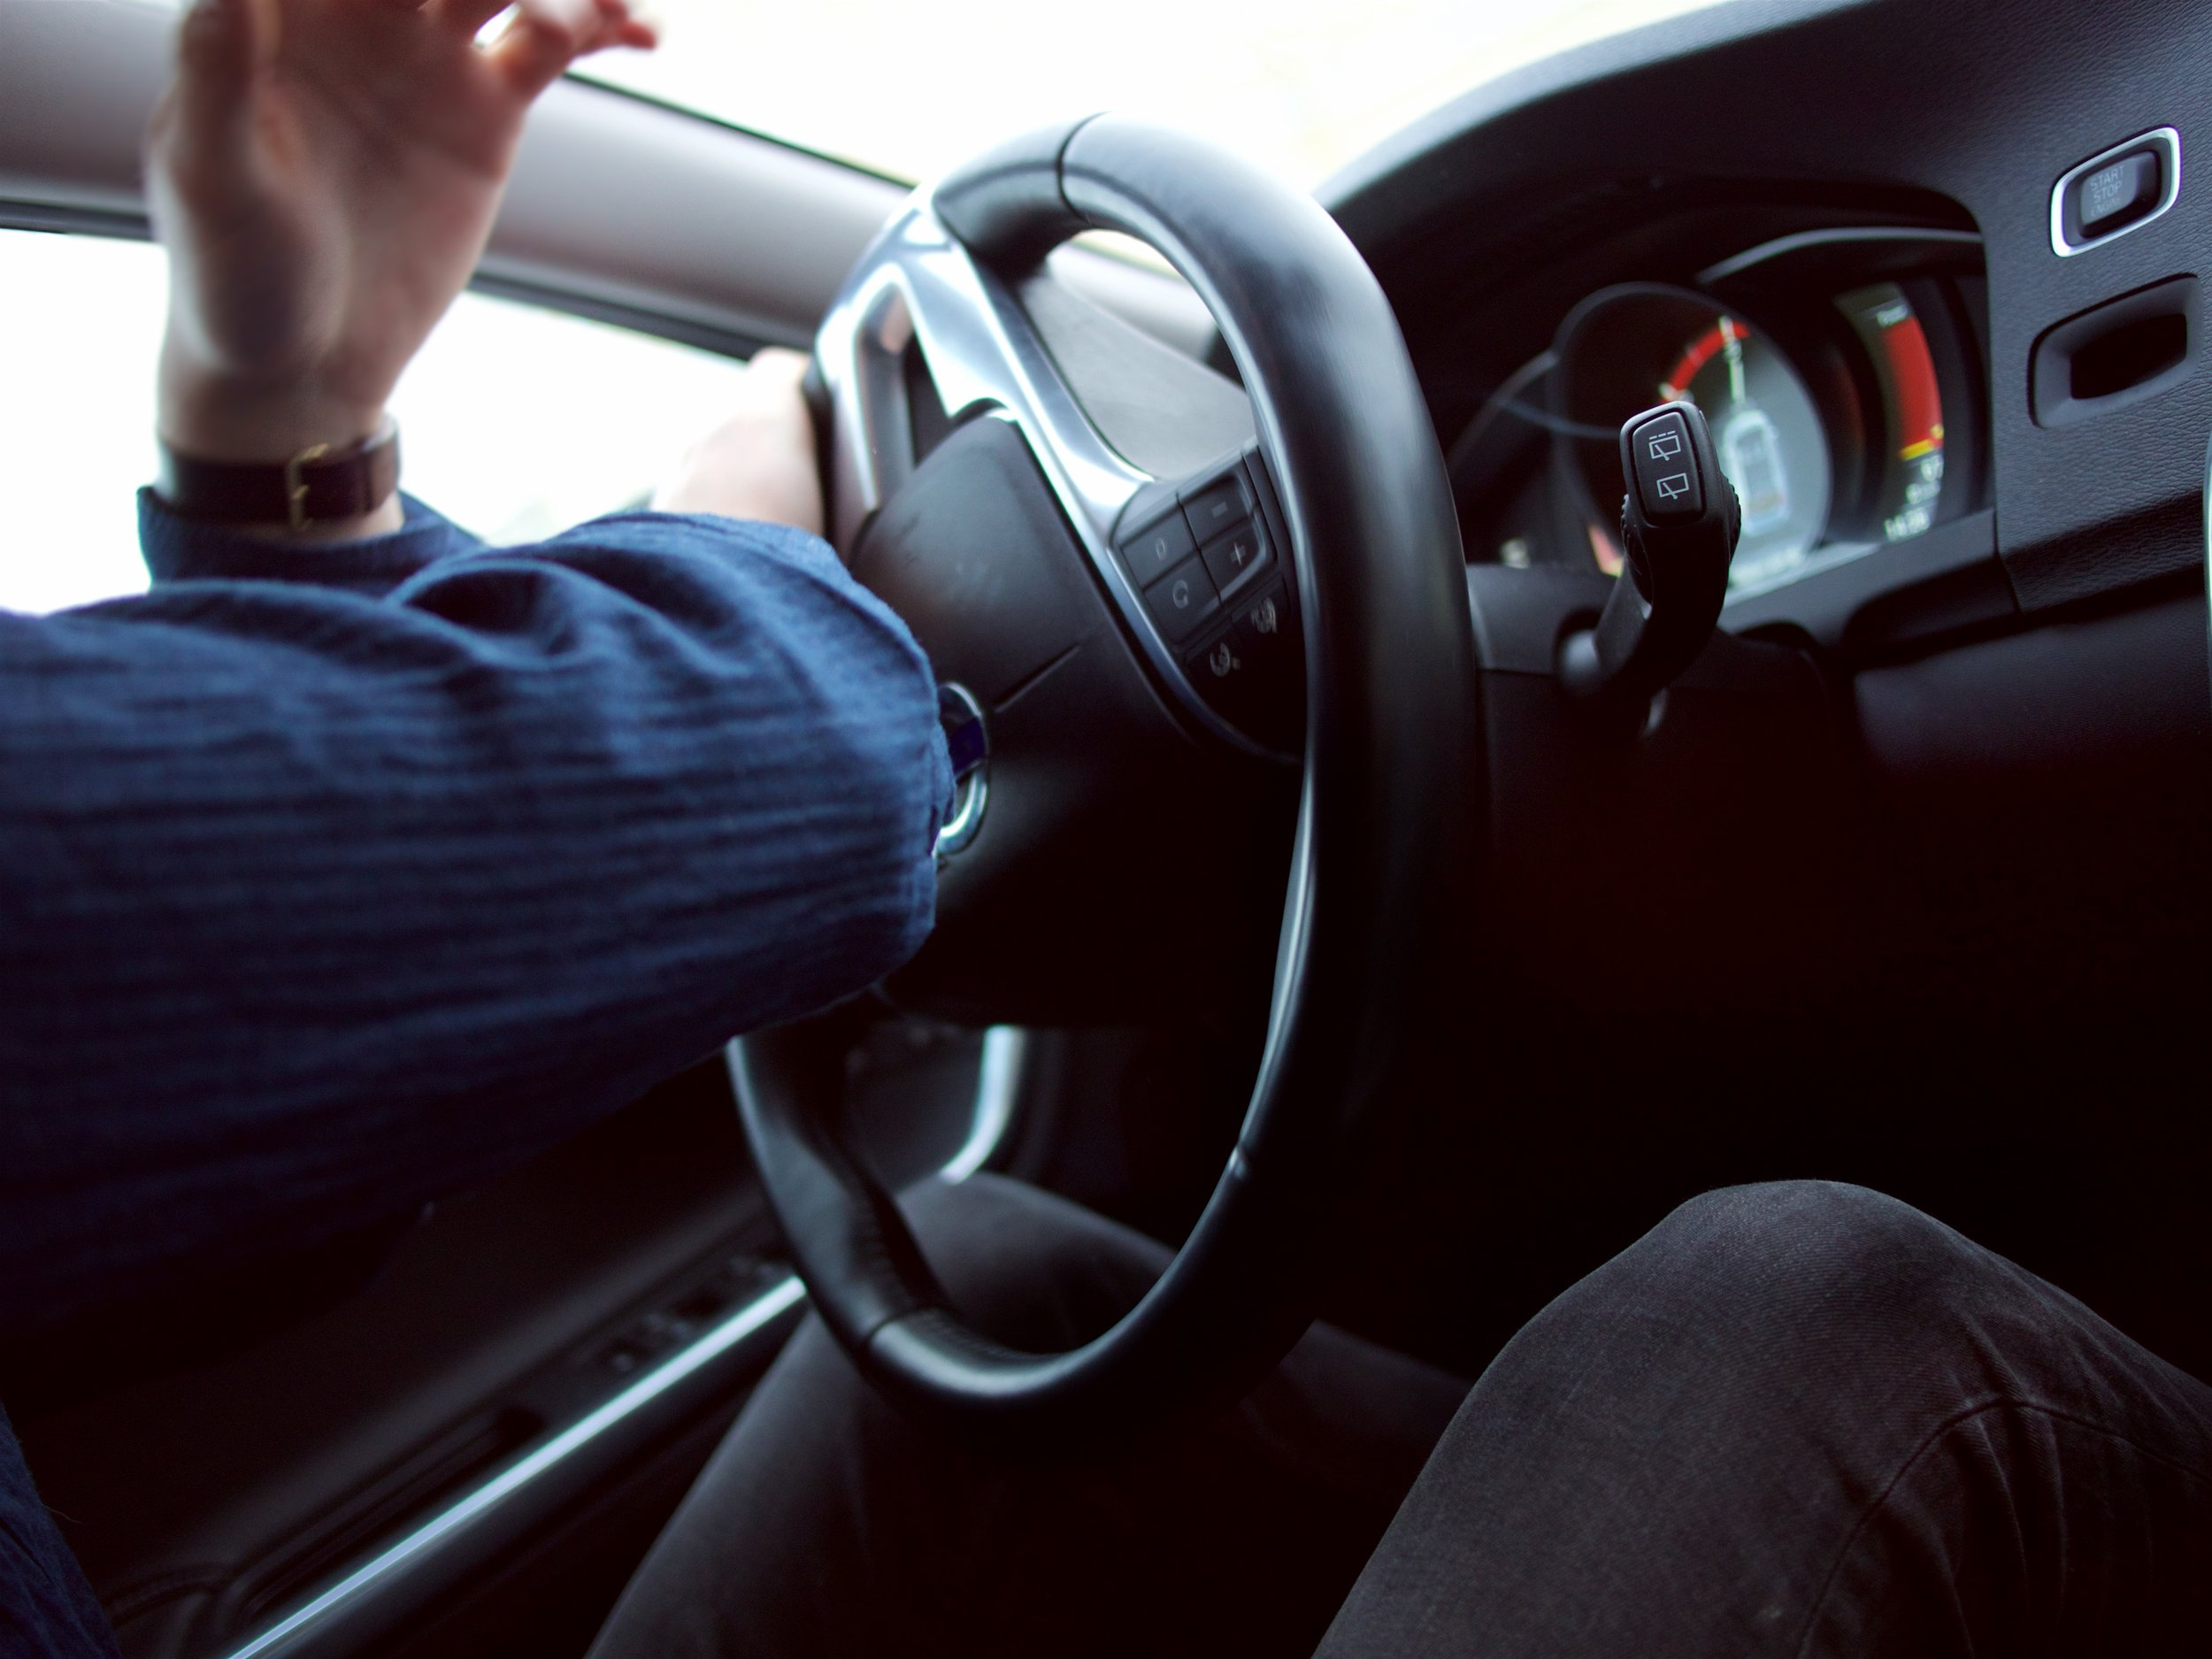 Types of Vehicle Accidents - Drunk DrivingDistracted DrivingHit-and-RunTruck/Commercial VehicleMotorcycleBusScooter-Lime/Bird/LyftRideshare-Uber/Lyft